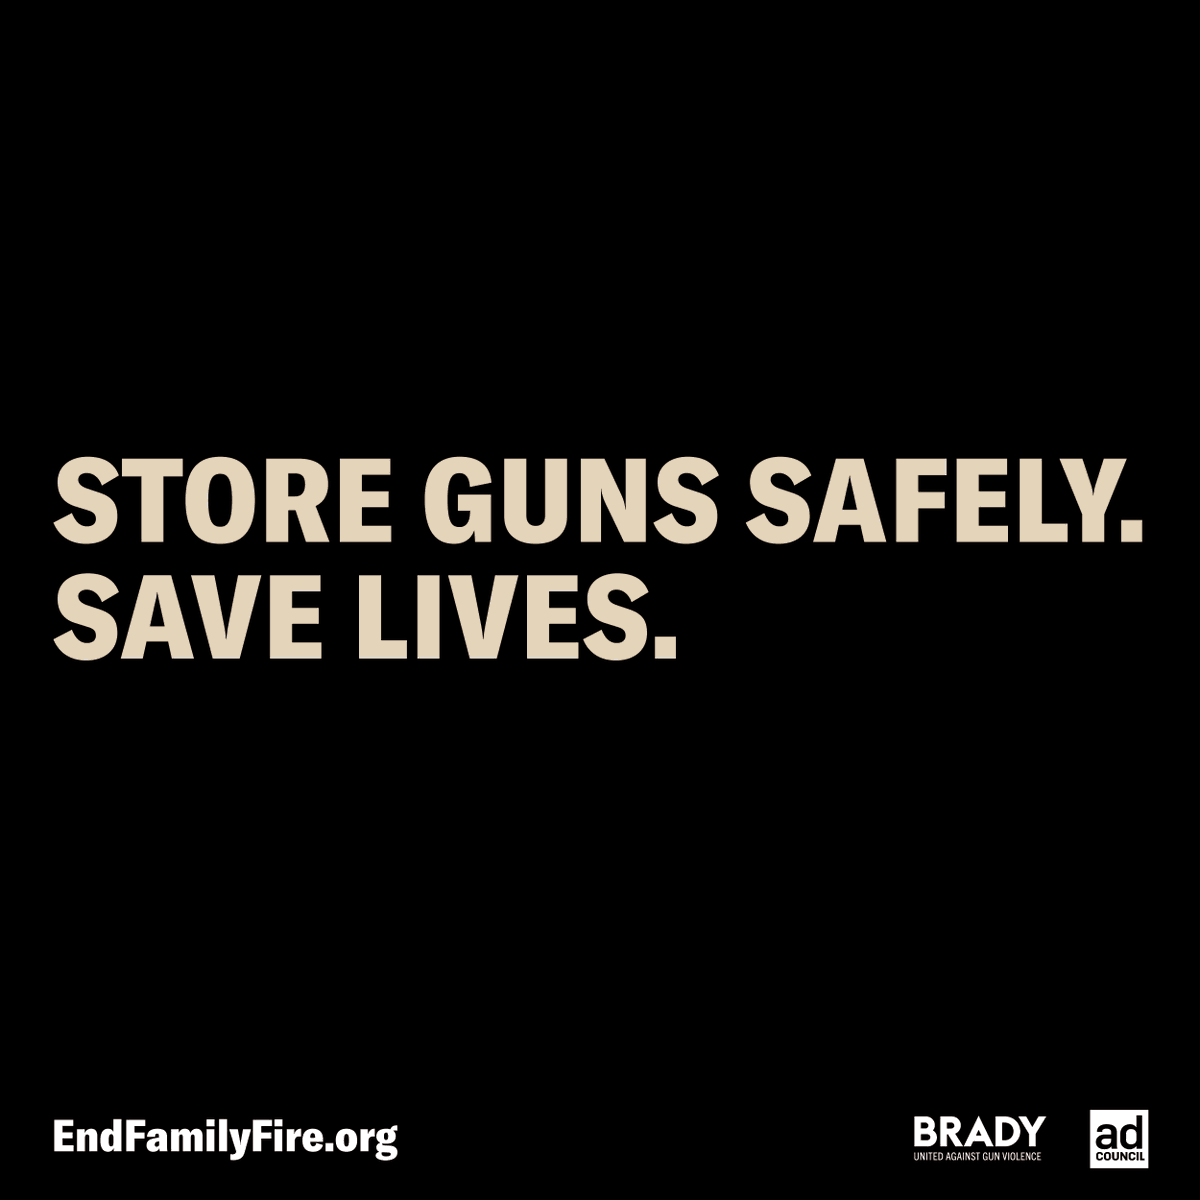 We lose 63 people to gun suicide in America every day – more than are lost to firearm murders and unintentional shootings combined. That's if one of the deadliest mass shootings happened… everyday.  Practice #SafeStorage to #EndFamilyFire https://t.co/zrLJCujnPY